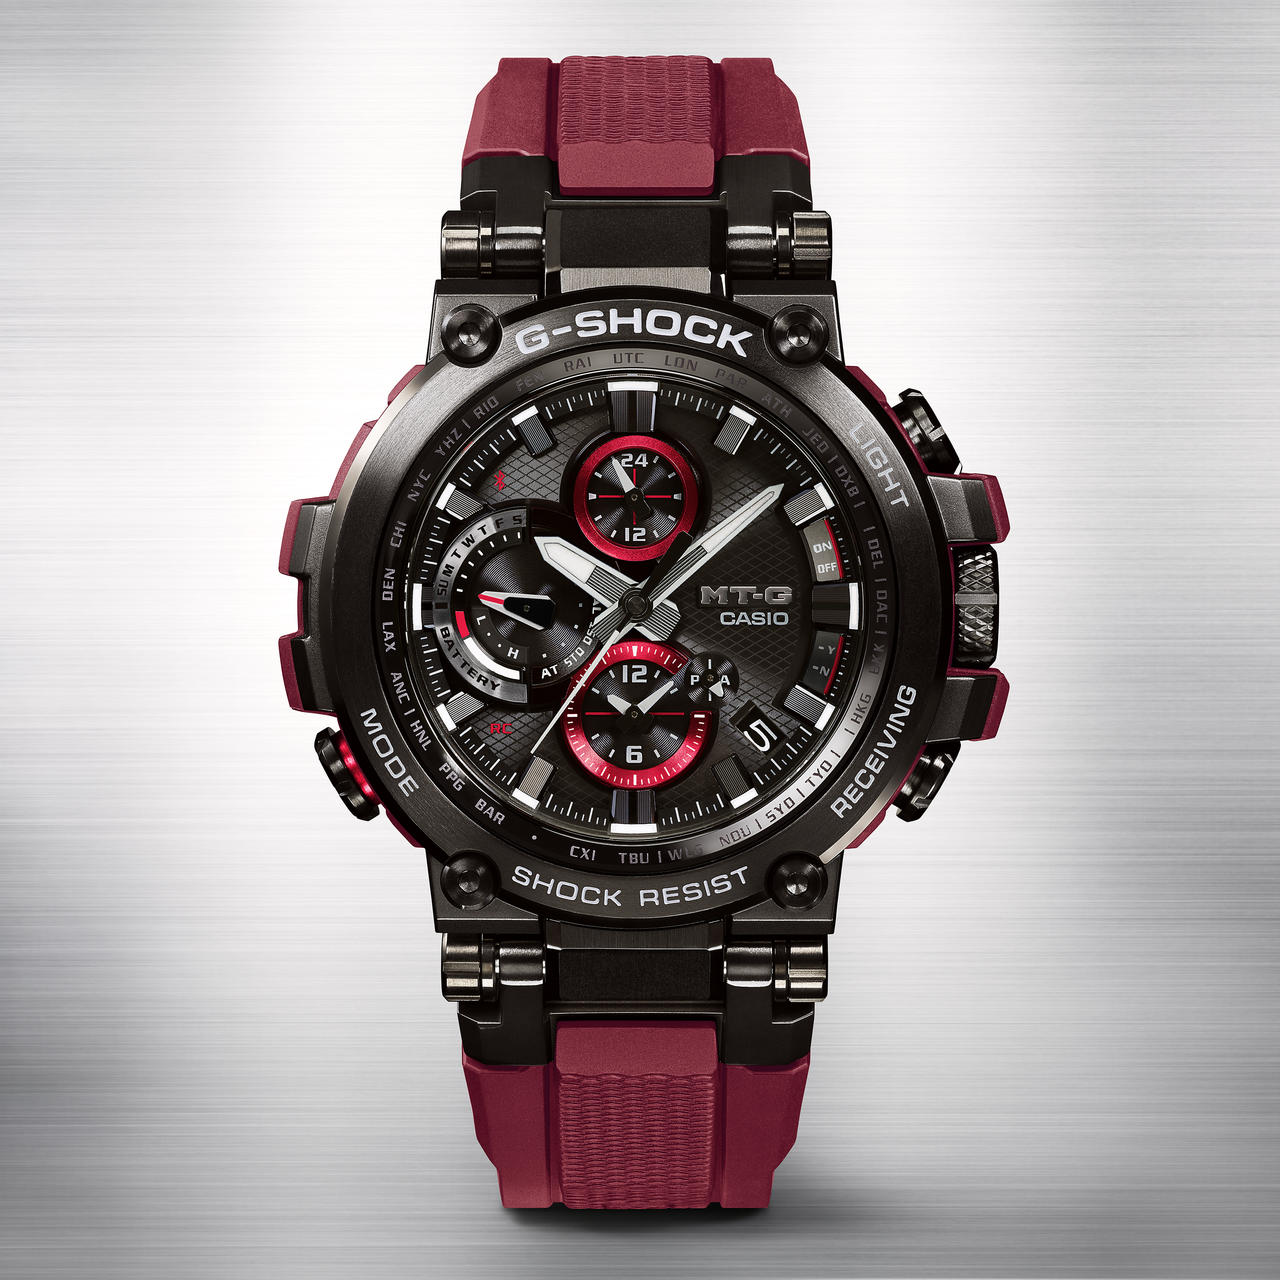 Red Alert: G-SHOCK Launches Hot New MT-G Limited Edition